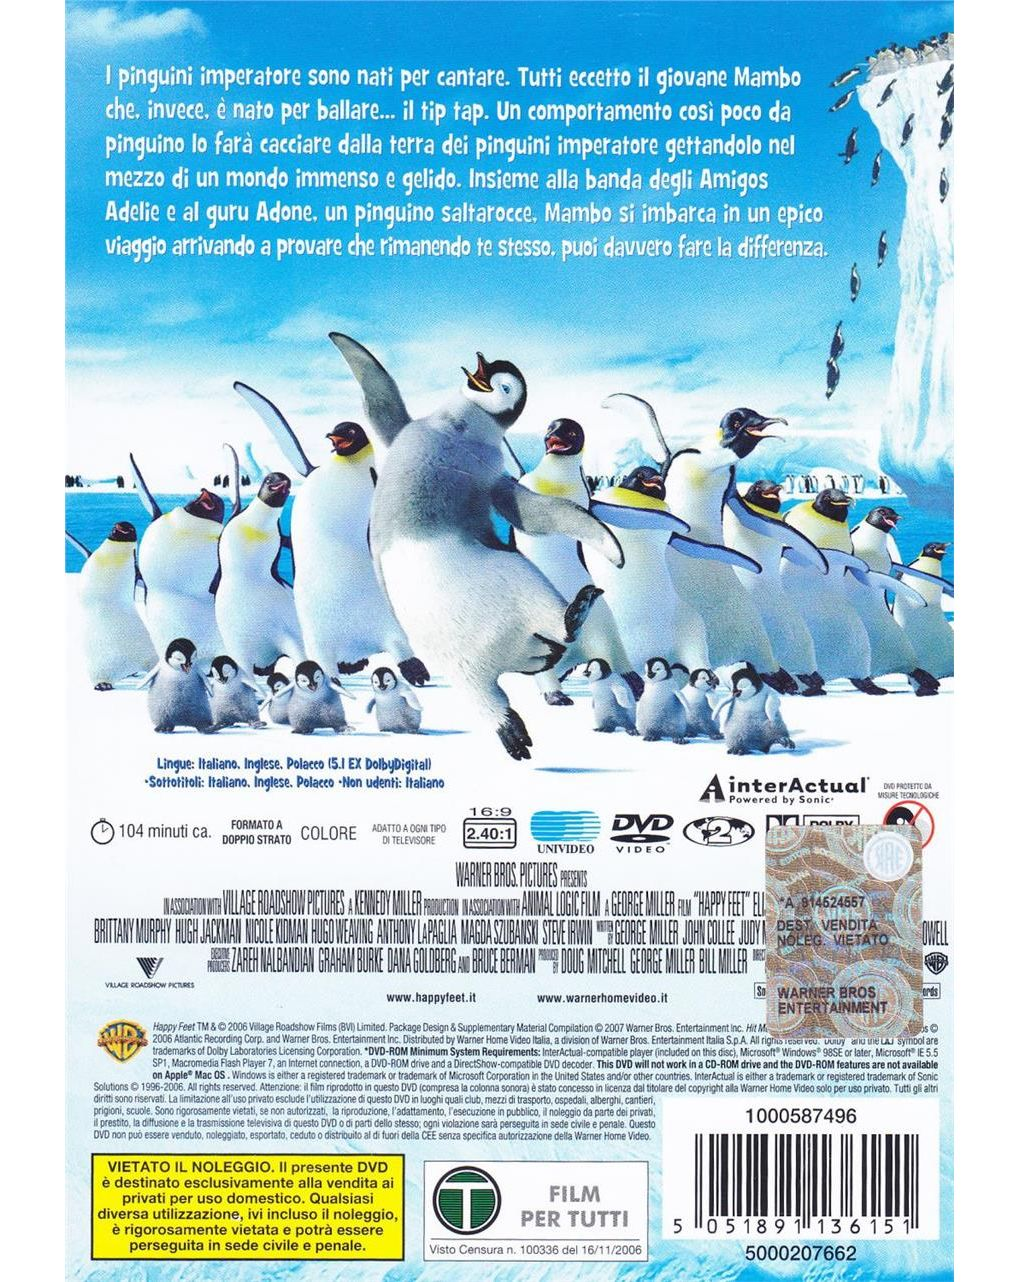 Dvd happy feet - Video Delta